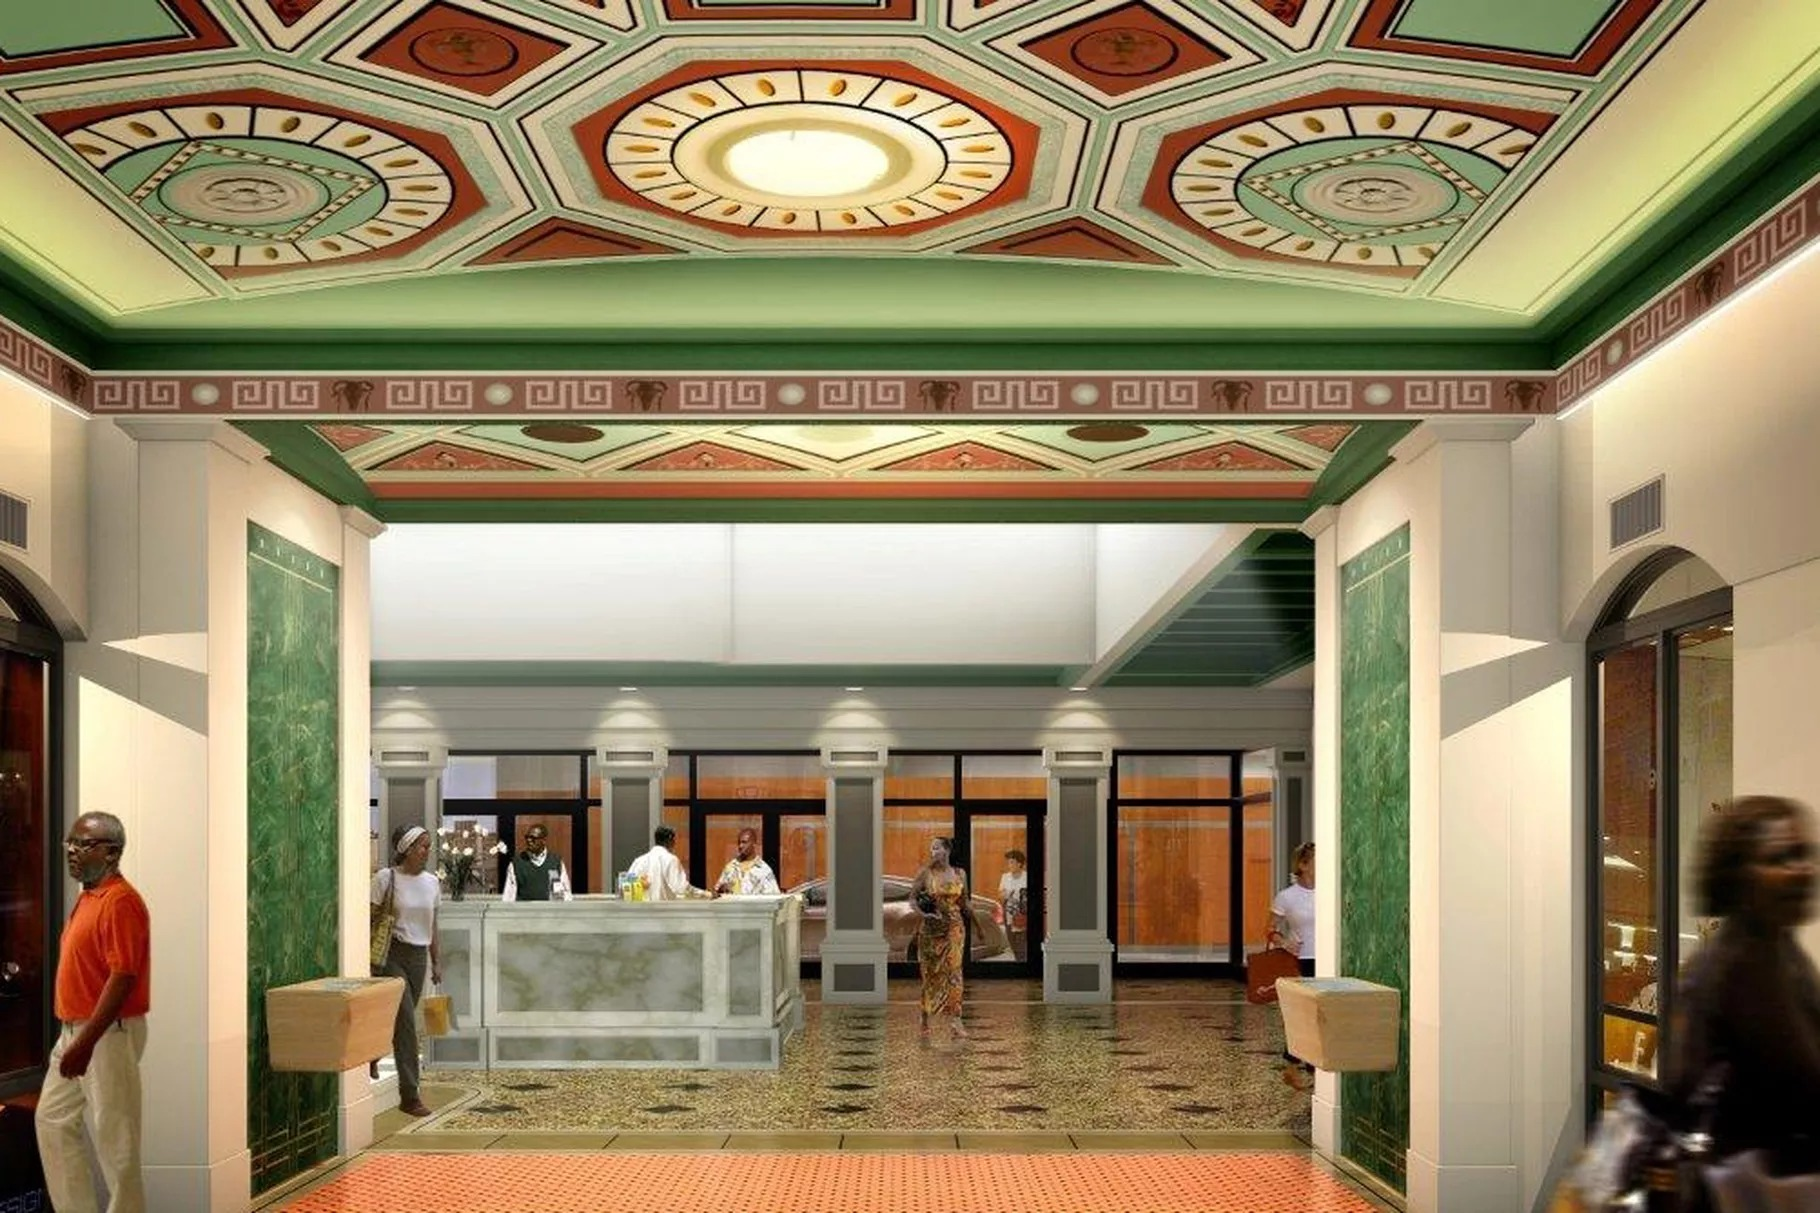 A digital rendering of the Victoria Theater's interior shows an ornate green and red ceiling with a geometric pattern, a marble reception desk, and a polished copper floor.